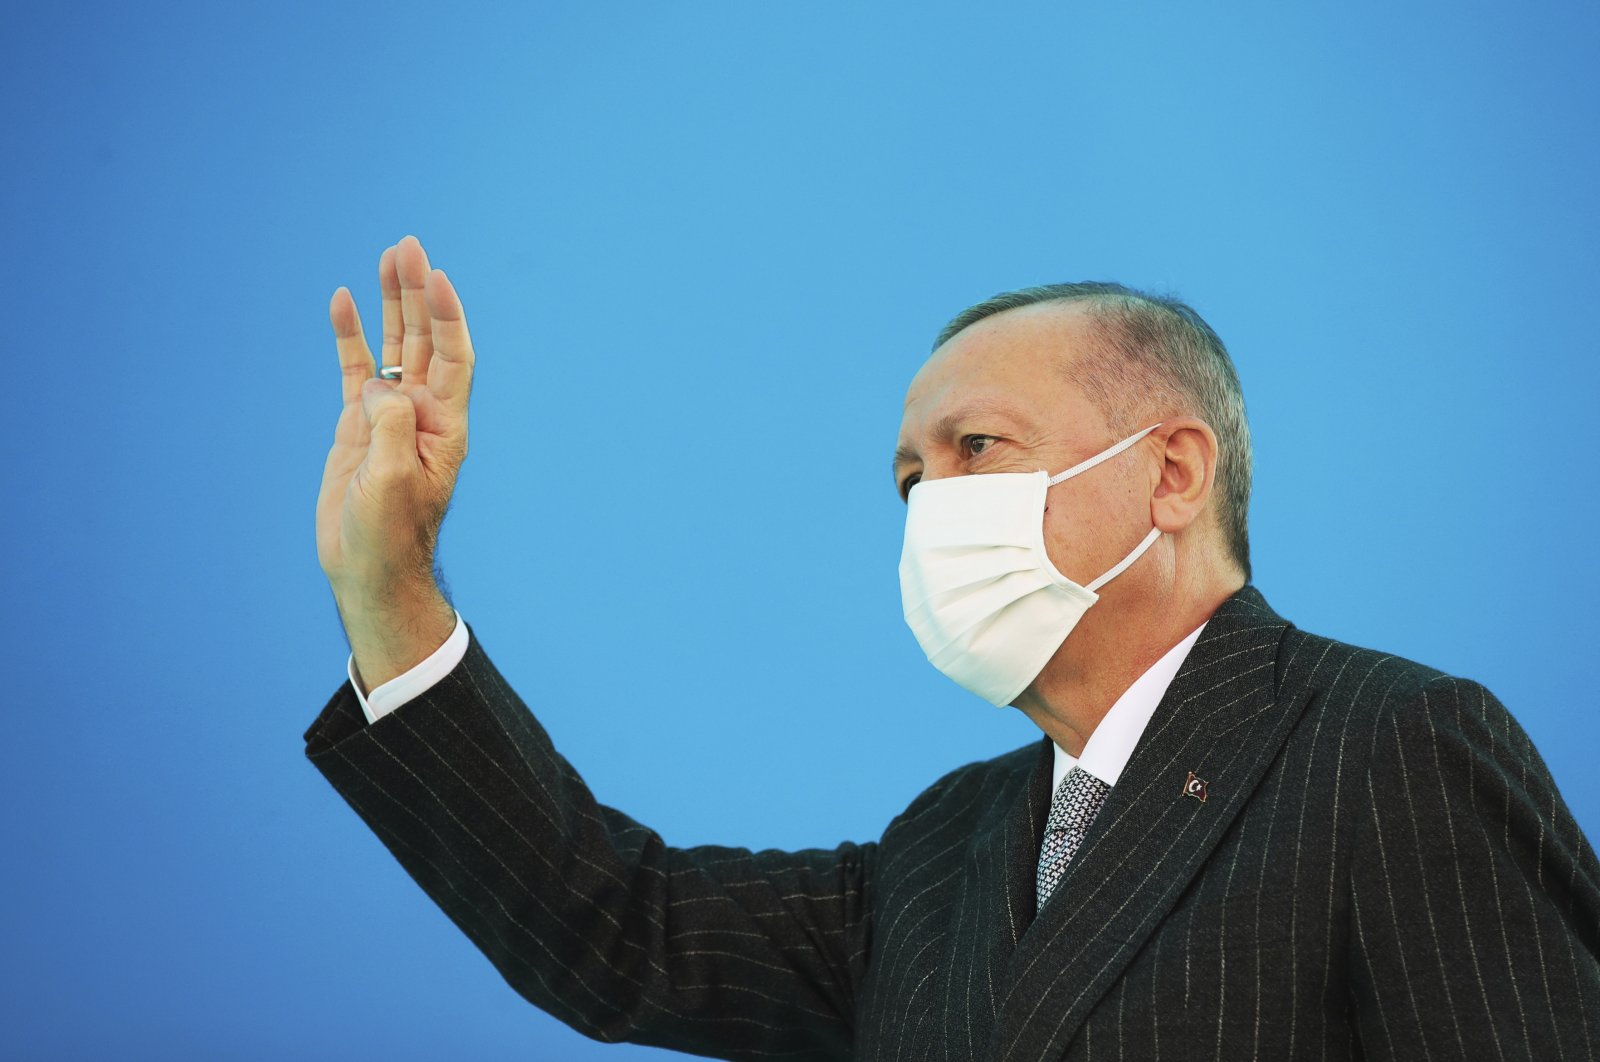 President Recep Tayyip Erdoğan, wearing a mask to guard against the spread of COVID-19, waves toward his ruling Justice and Development Party (AK Party) members at a soccer stadium, in Kahramanmaraş, southeast Turkey, Nov. 7, 2020. (AP)